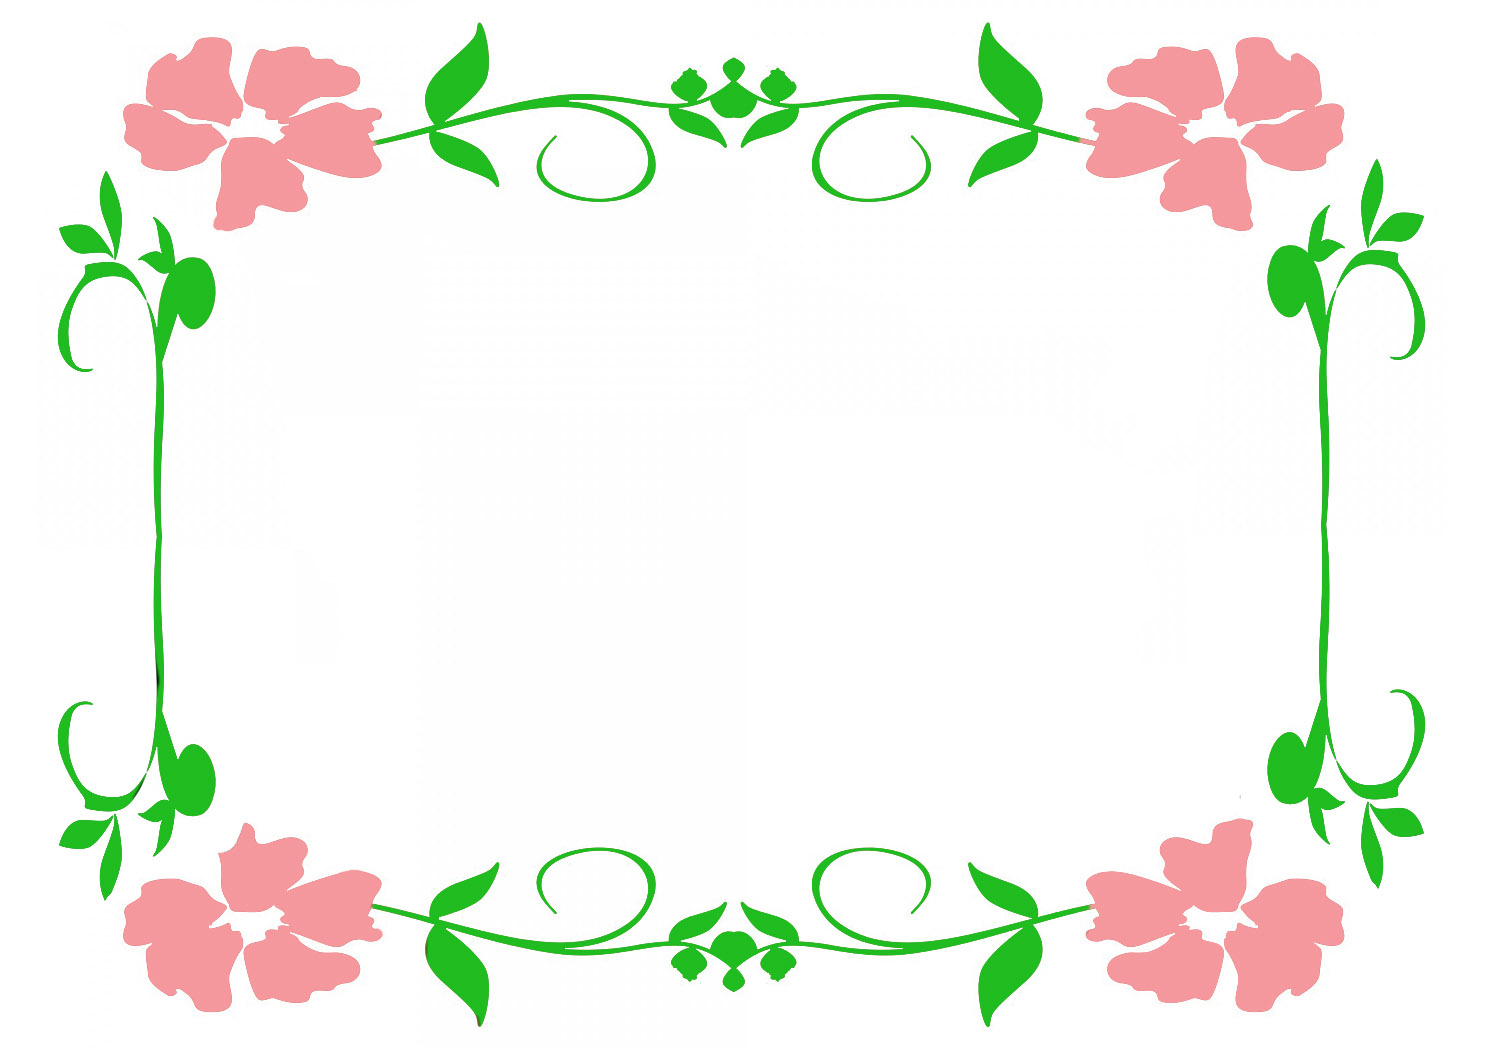 Flowers frame clipart image freeuse library Flower borders and frames image freeuse library